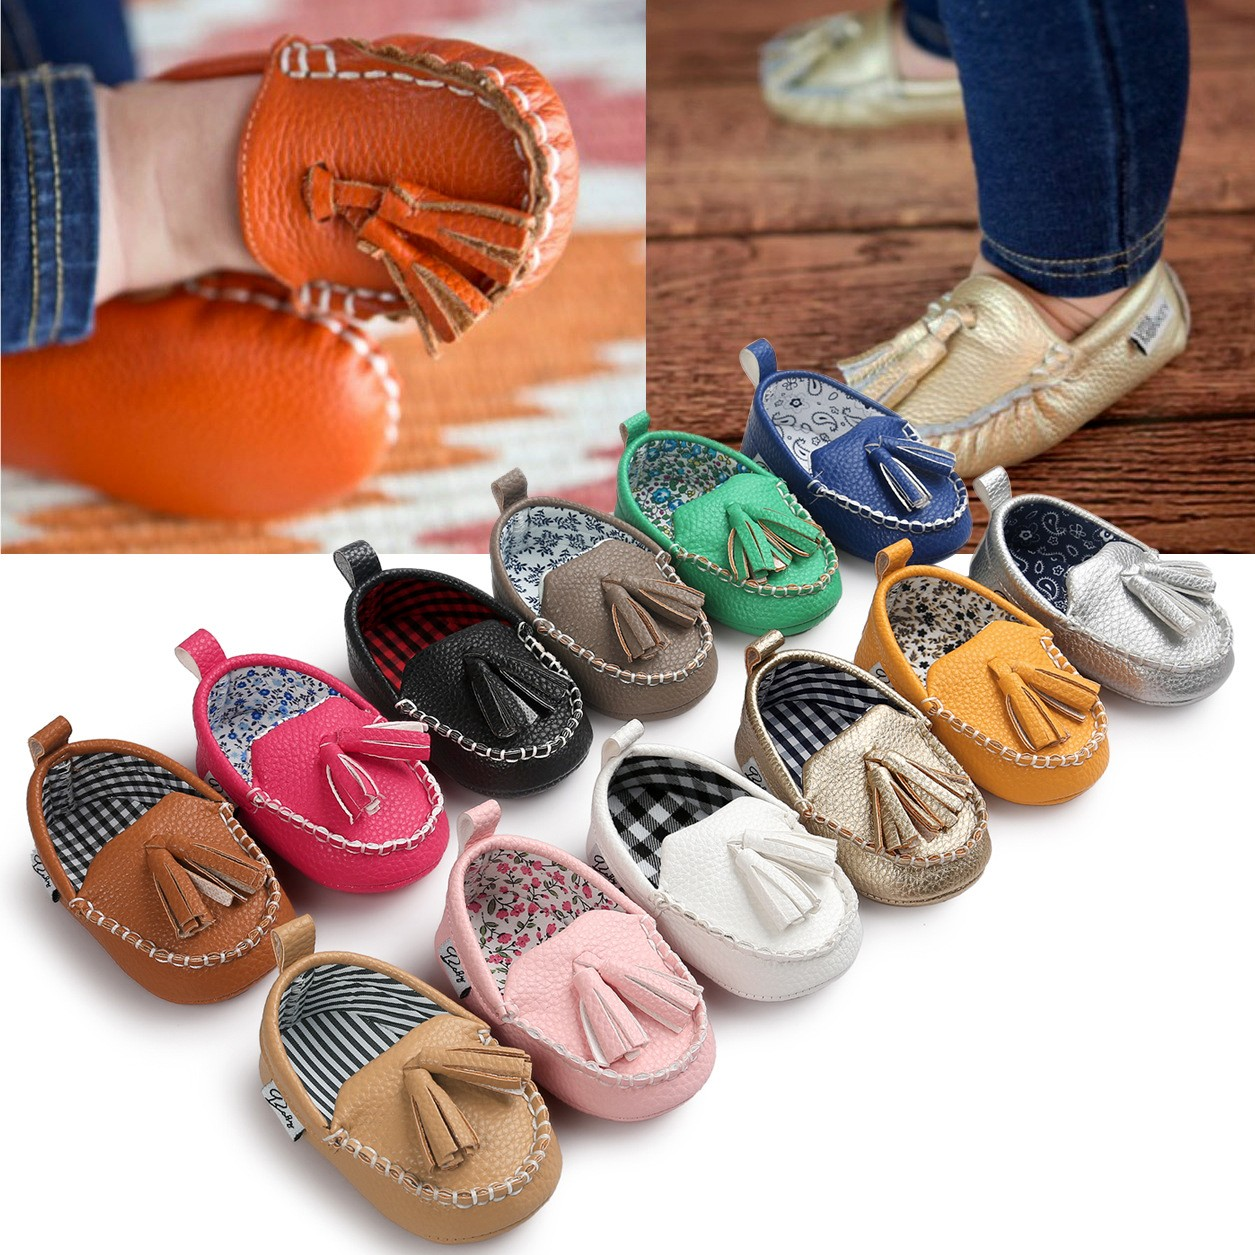 New Spring Bebe PU Leather Moccasins Soft Moccs Shoes Baby Boy Toddler Shoes Baby Casual Shoes Girl Baby Sapatos ...